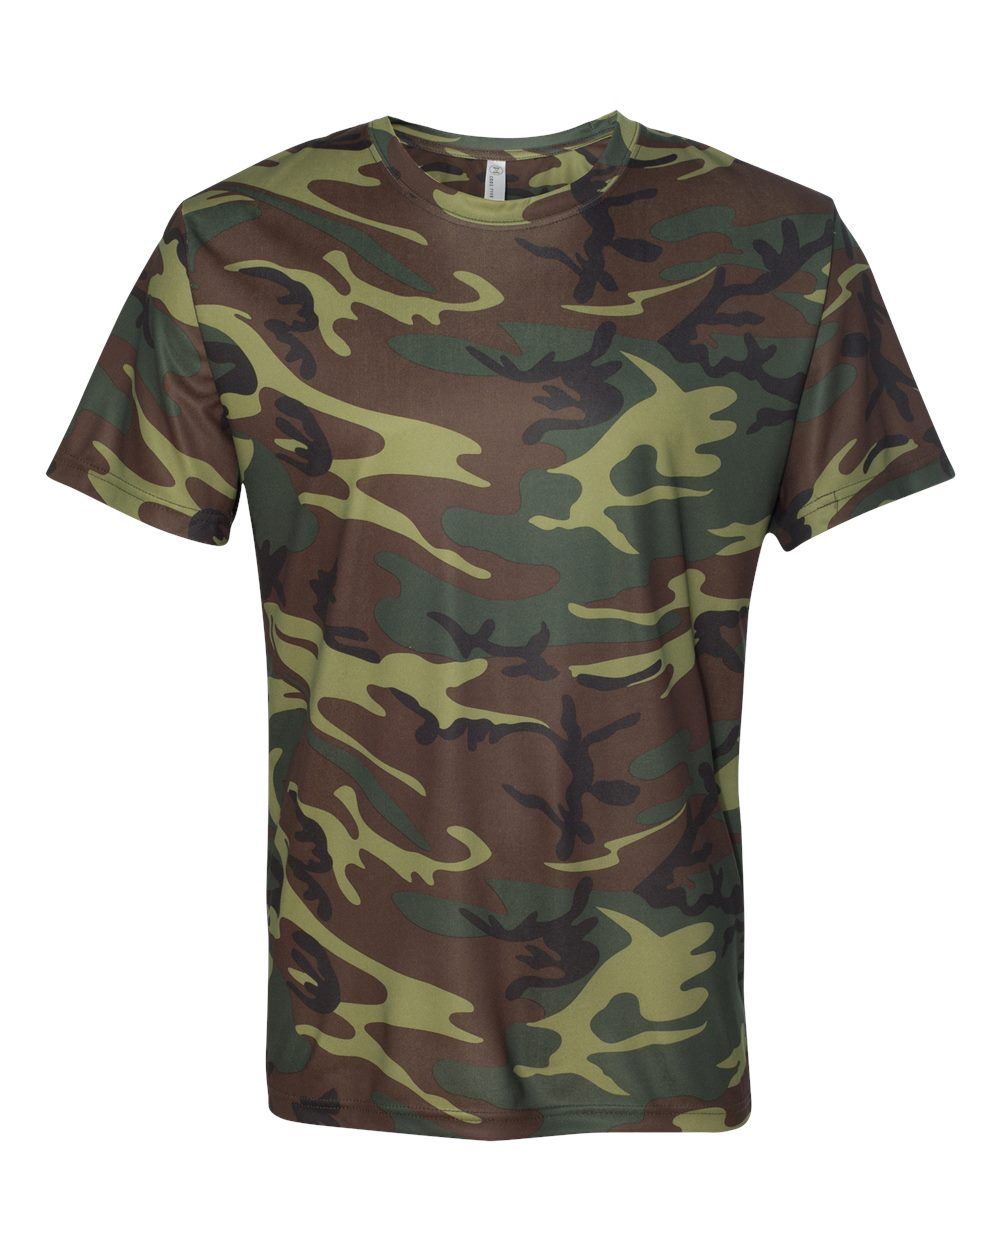 Customize design camo shirts cheap for Design tee shirts cheap